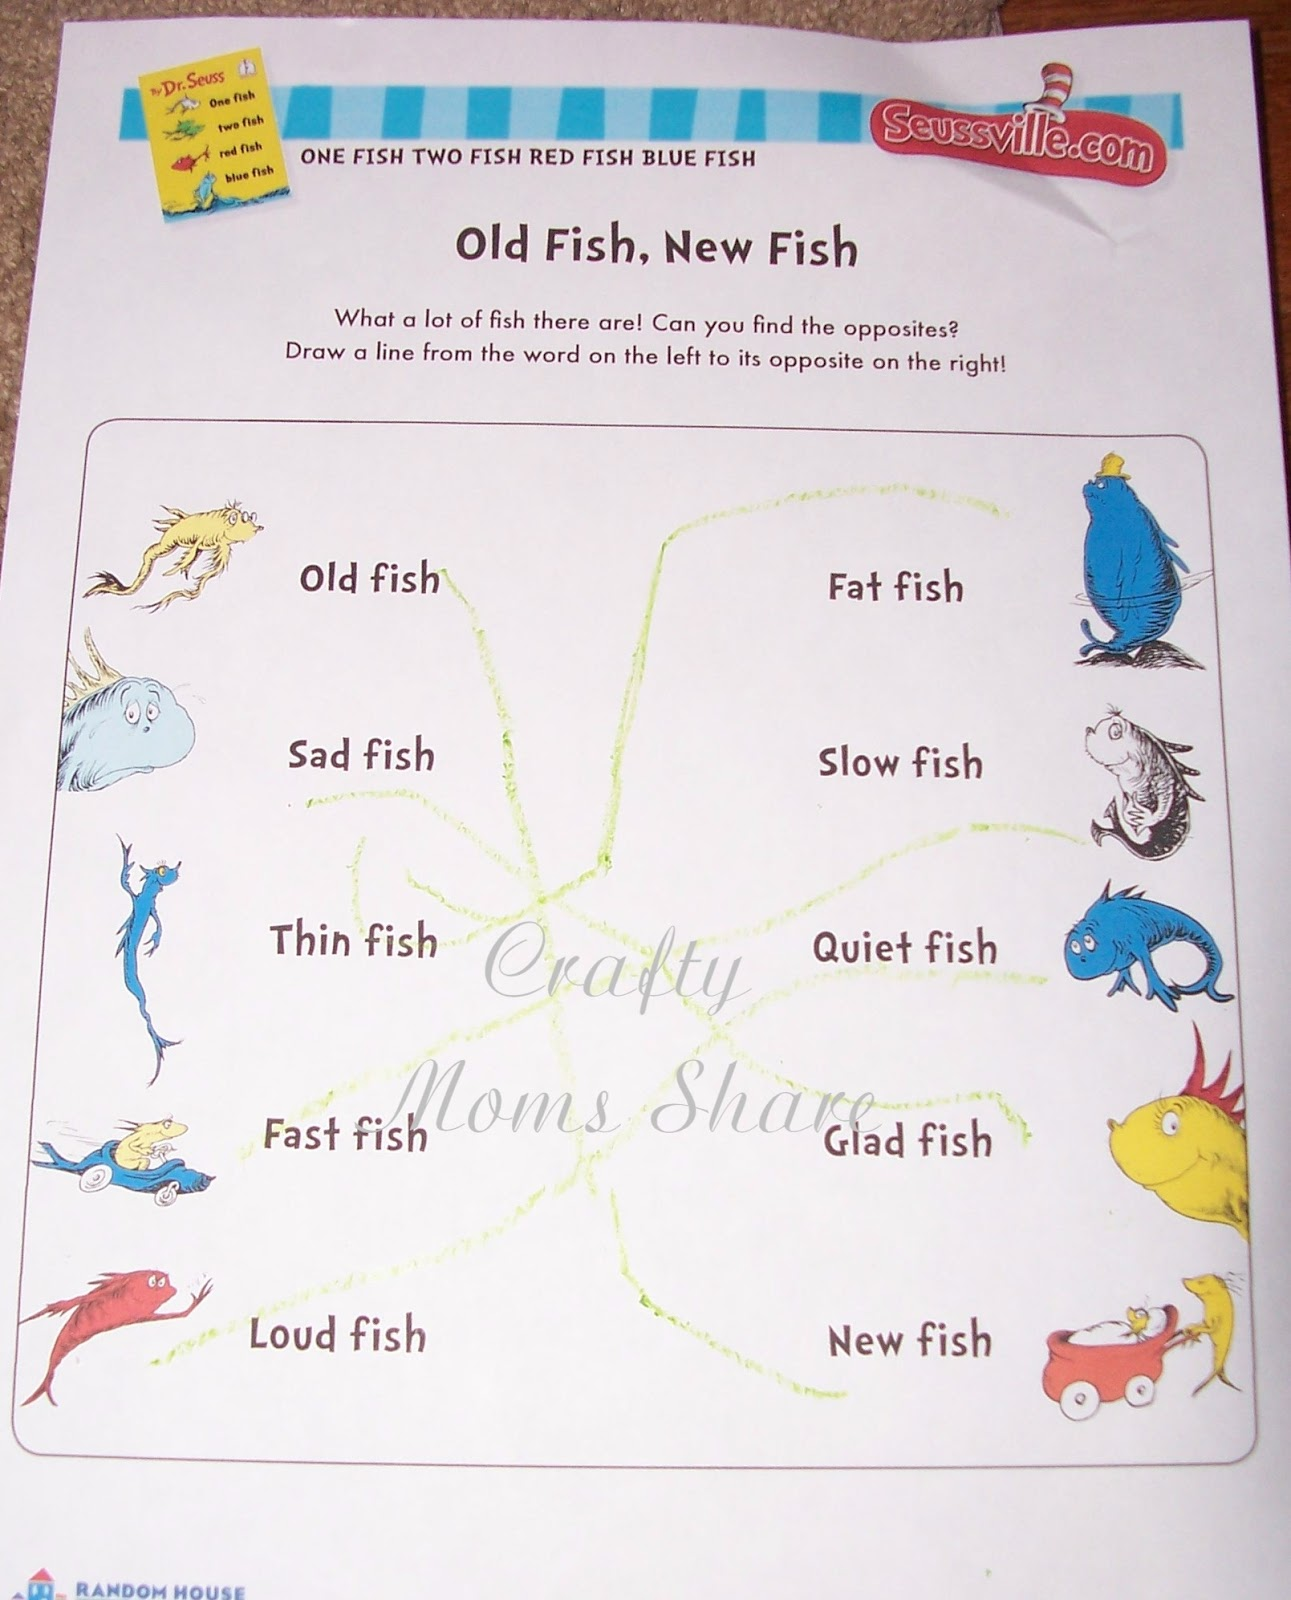 Crafty Moms Share One Fish Two Fish Red Fish Blue Fish